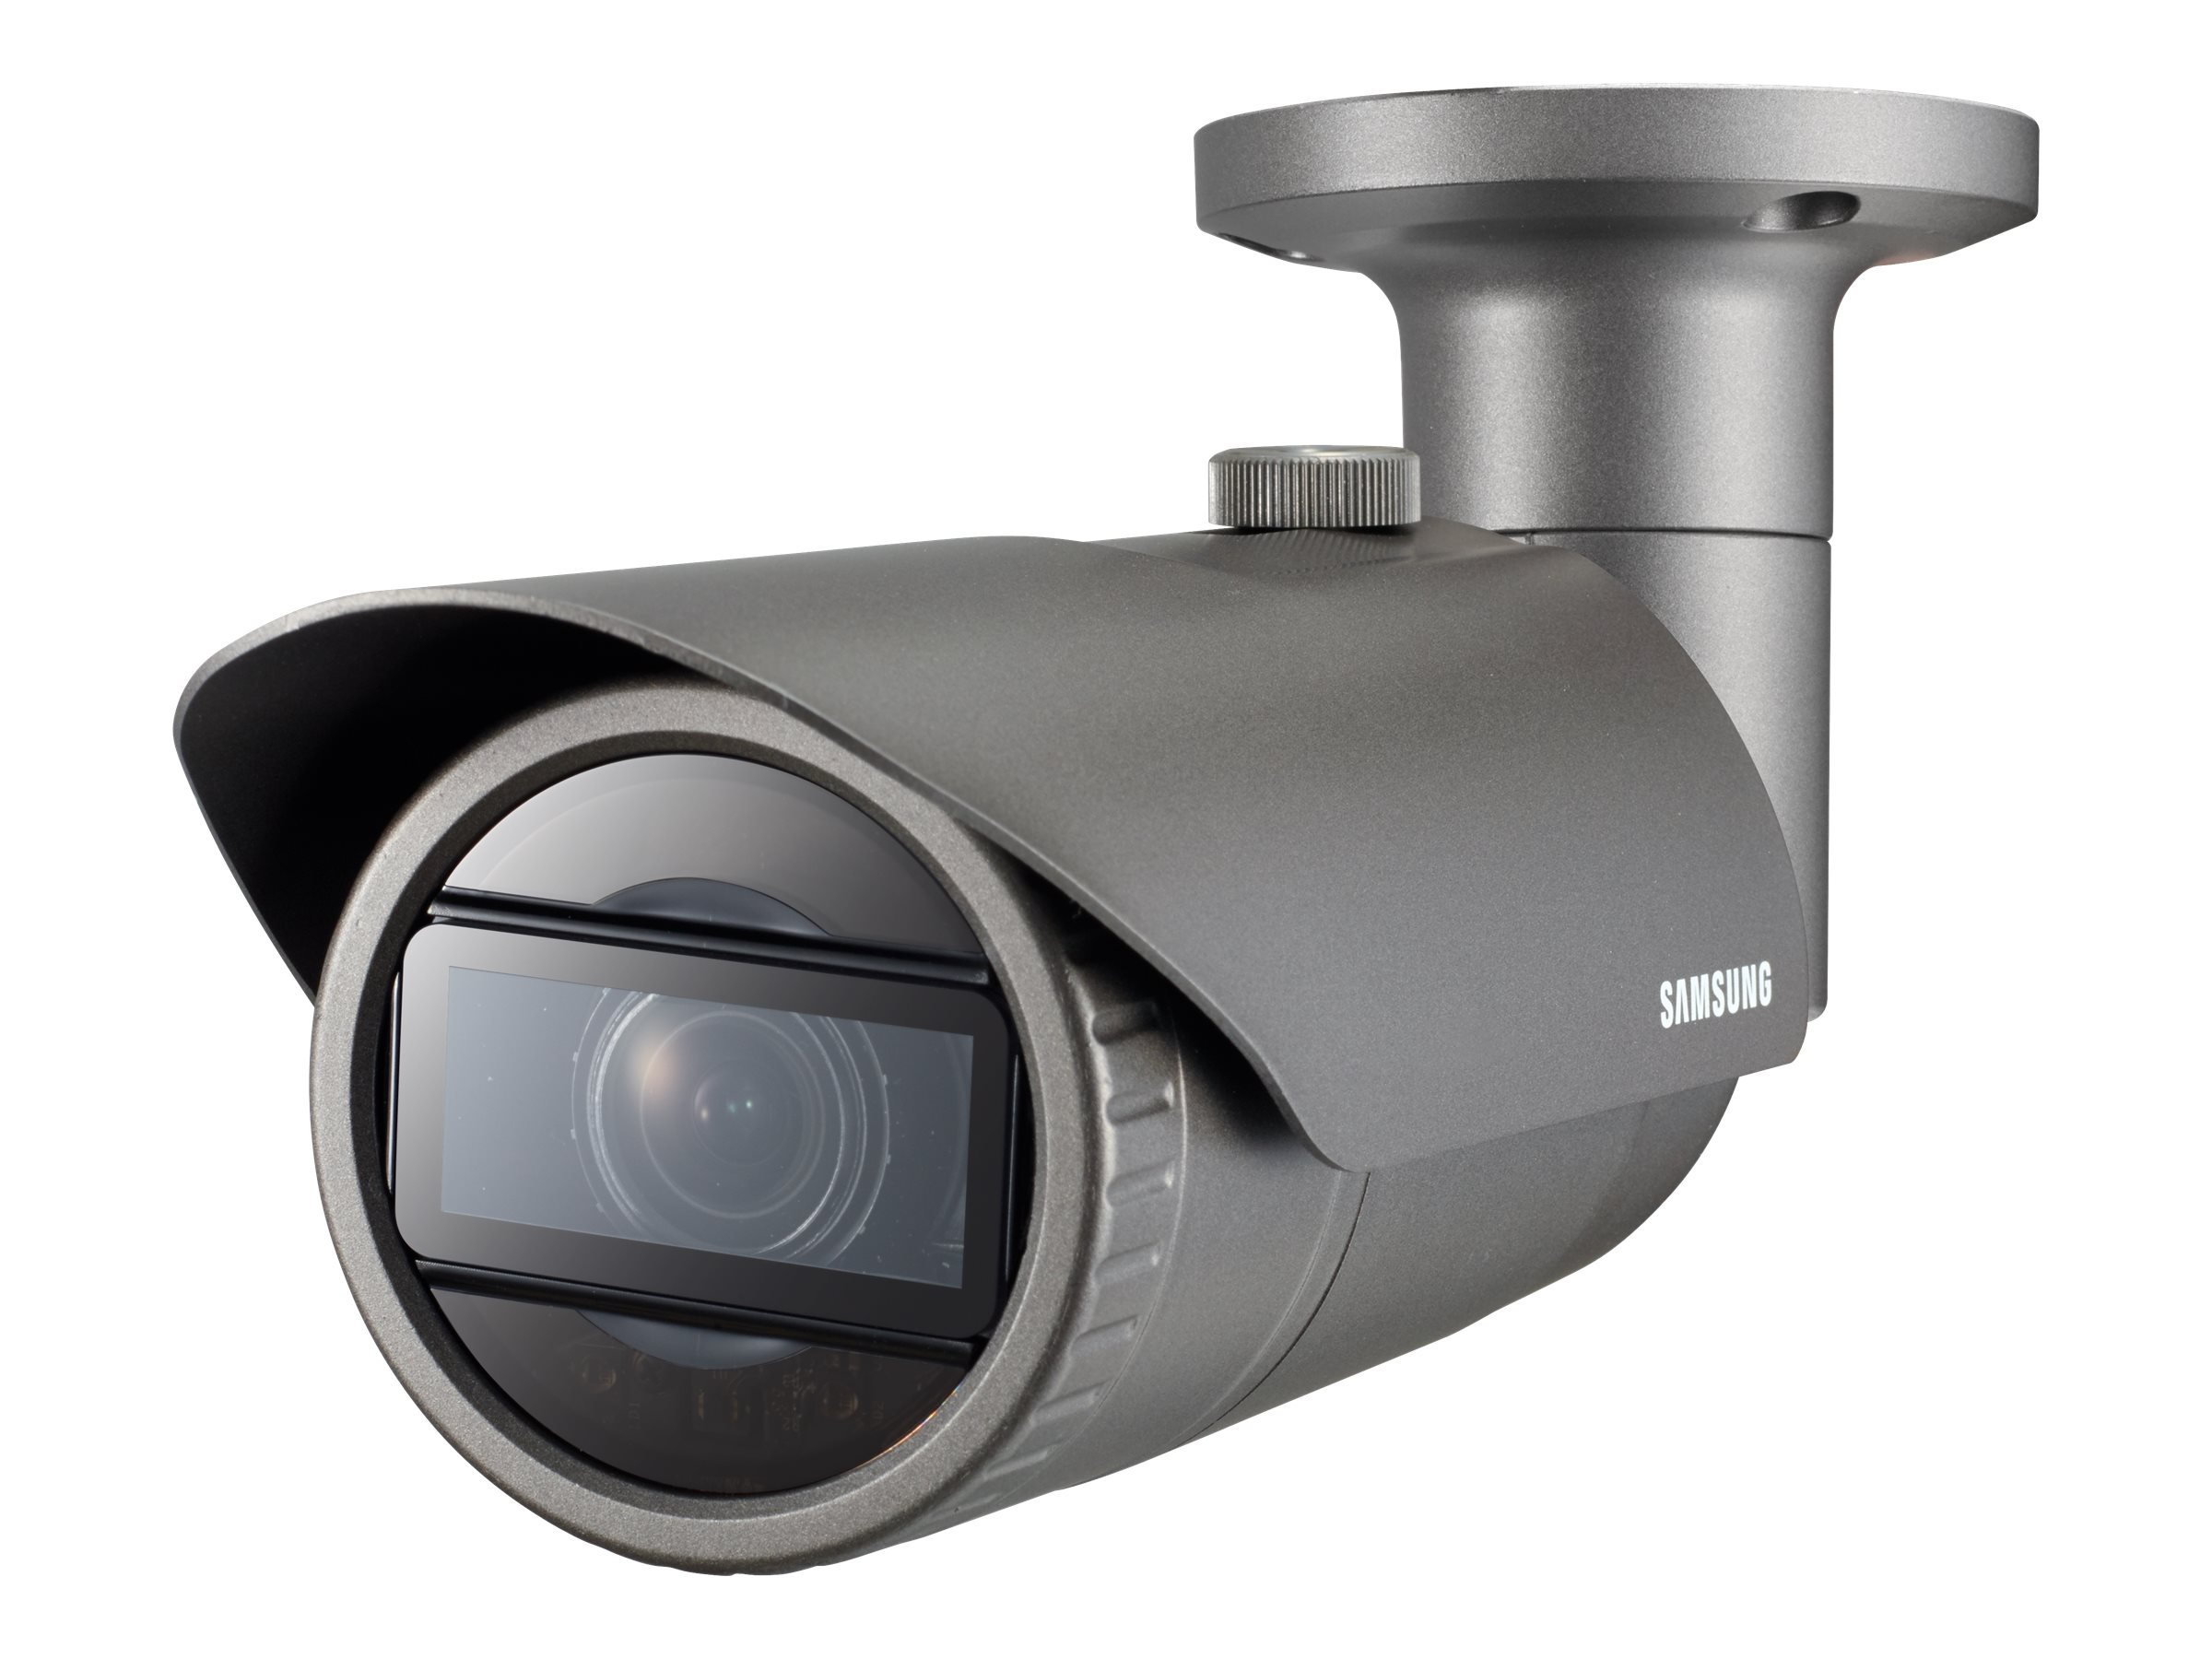 Samsung 2MP Full HD Network IR Bullet Camera with 2.8-12mm Lens